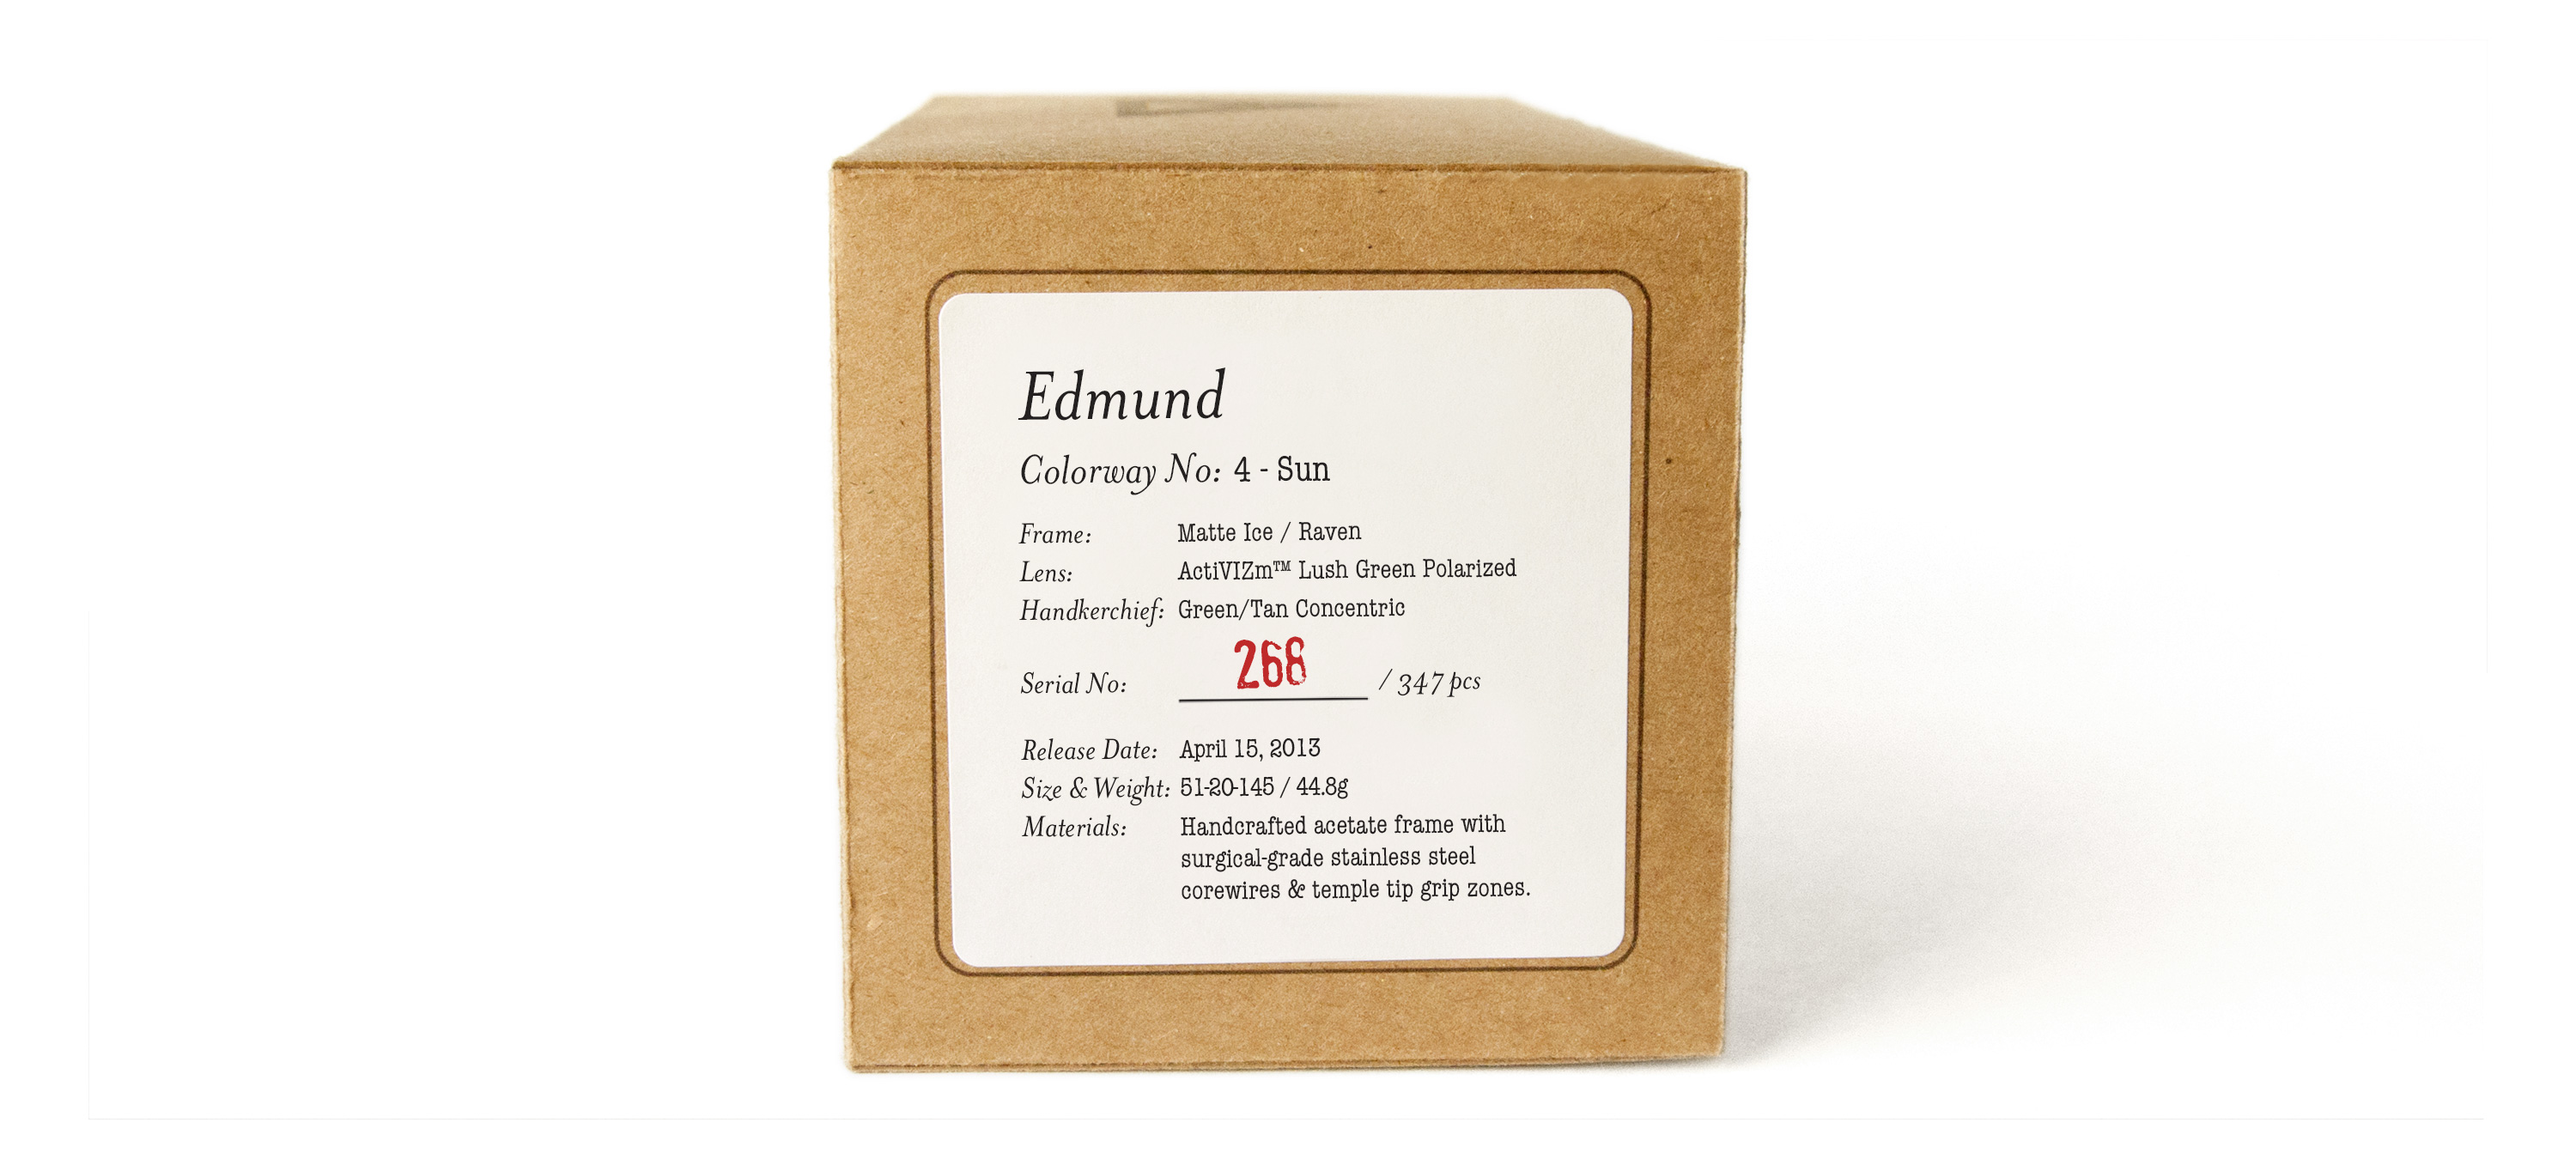 outer_pkg_label_edmund_sun_04